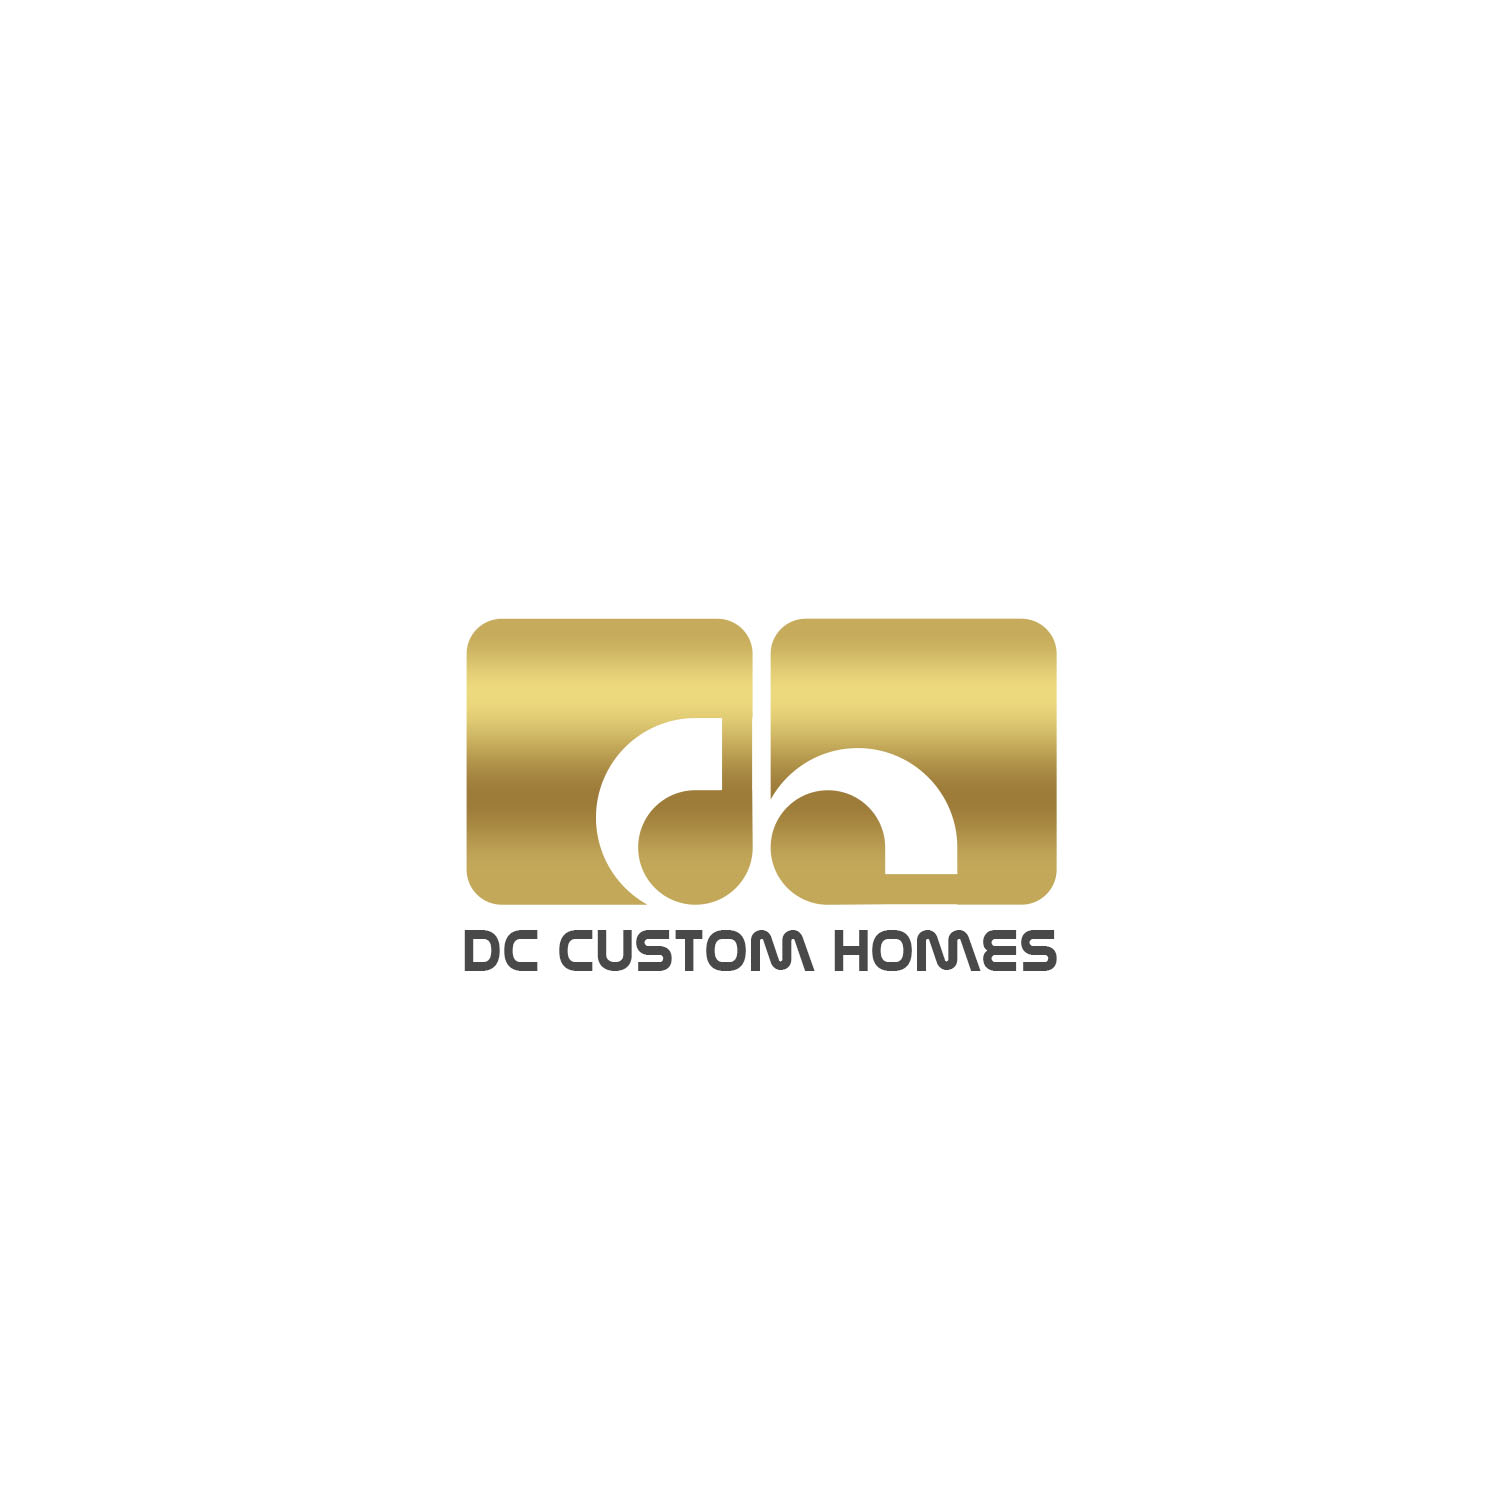 Logo Design by Private User - Entry No. 152 in the Logo Design Contest Creative Logo Design for DC Custom Homes.